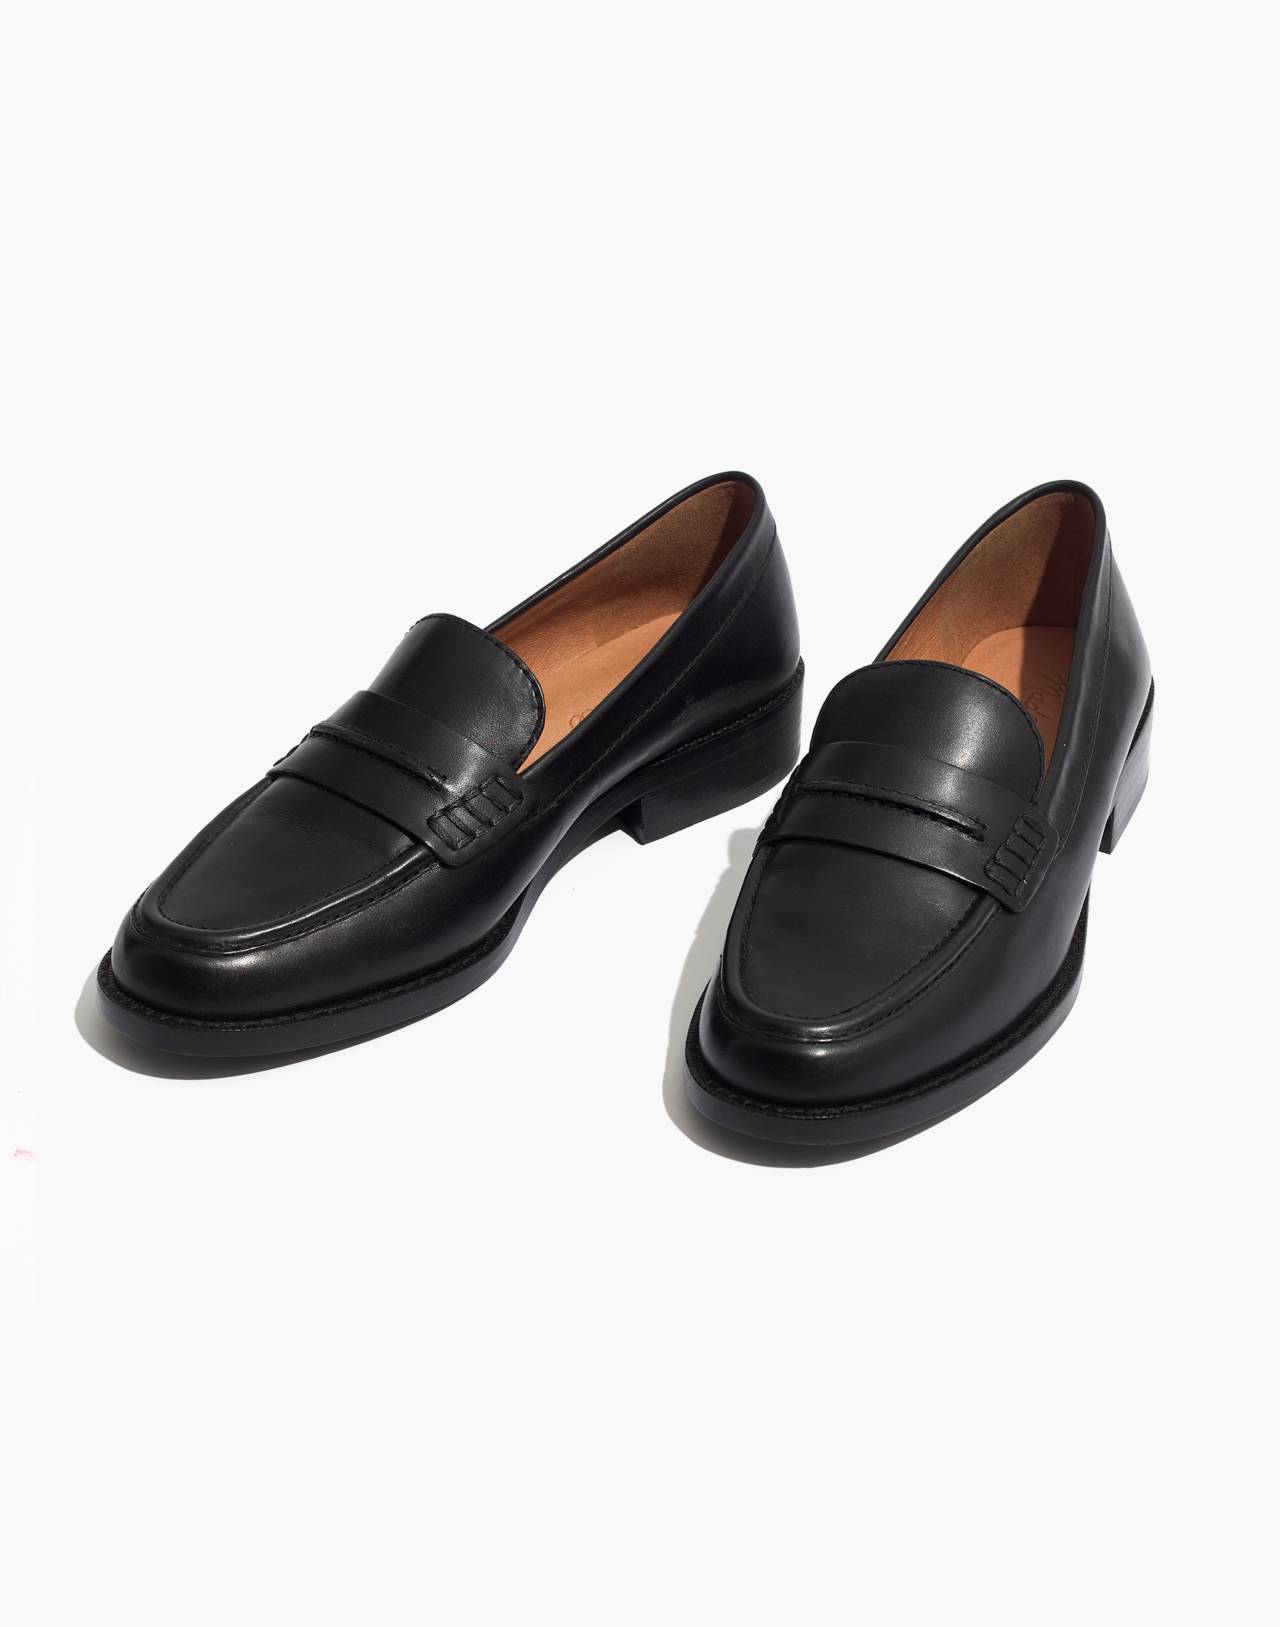 The Elinor Loafer in Leather in true black image 1